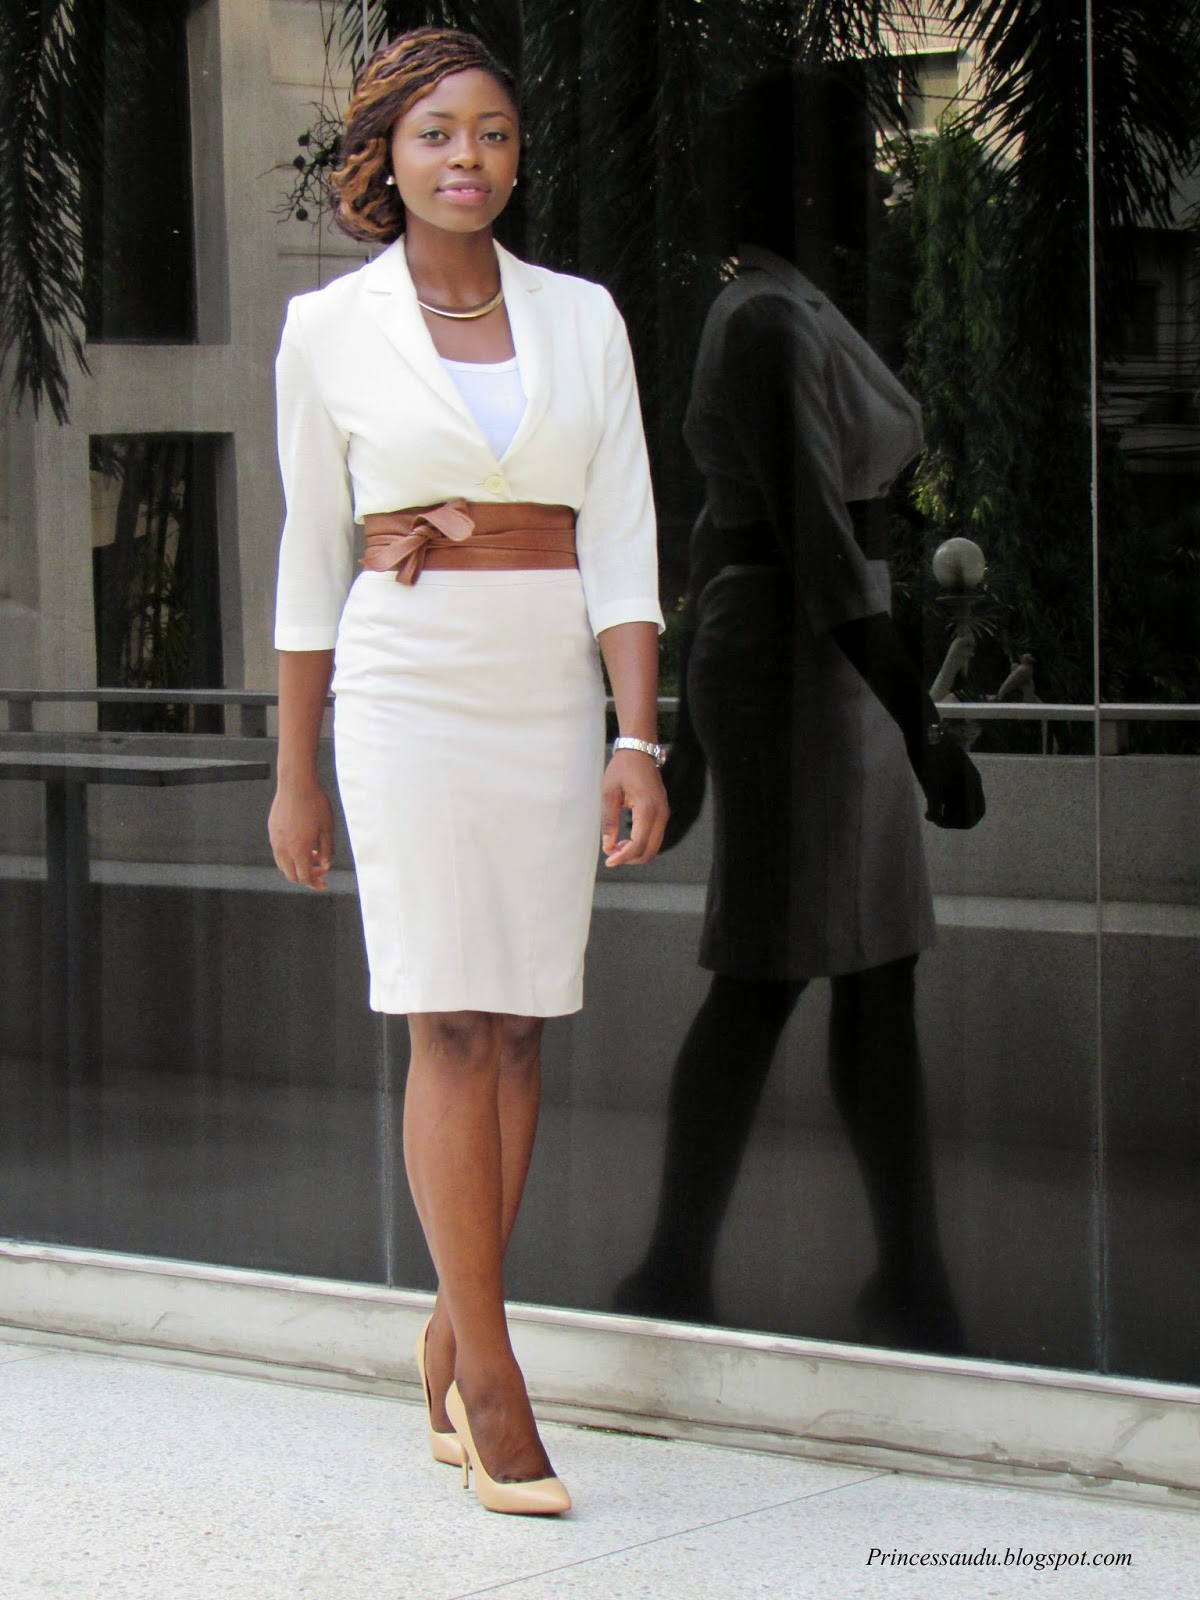 beige skirt, blazer upgrade, statement obi belt